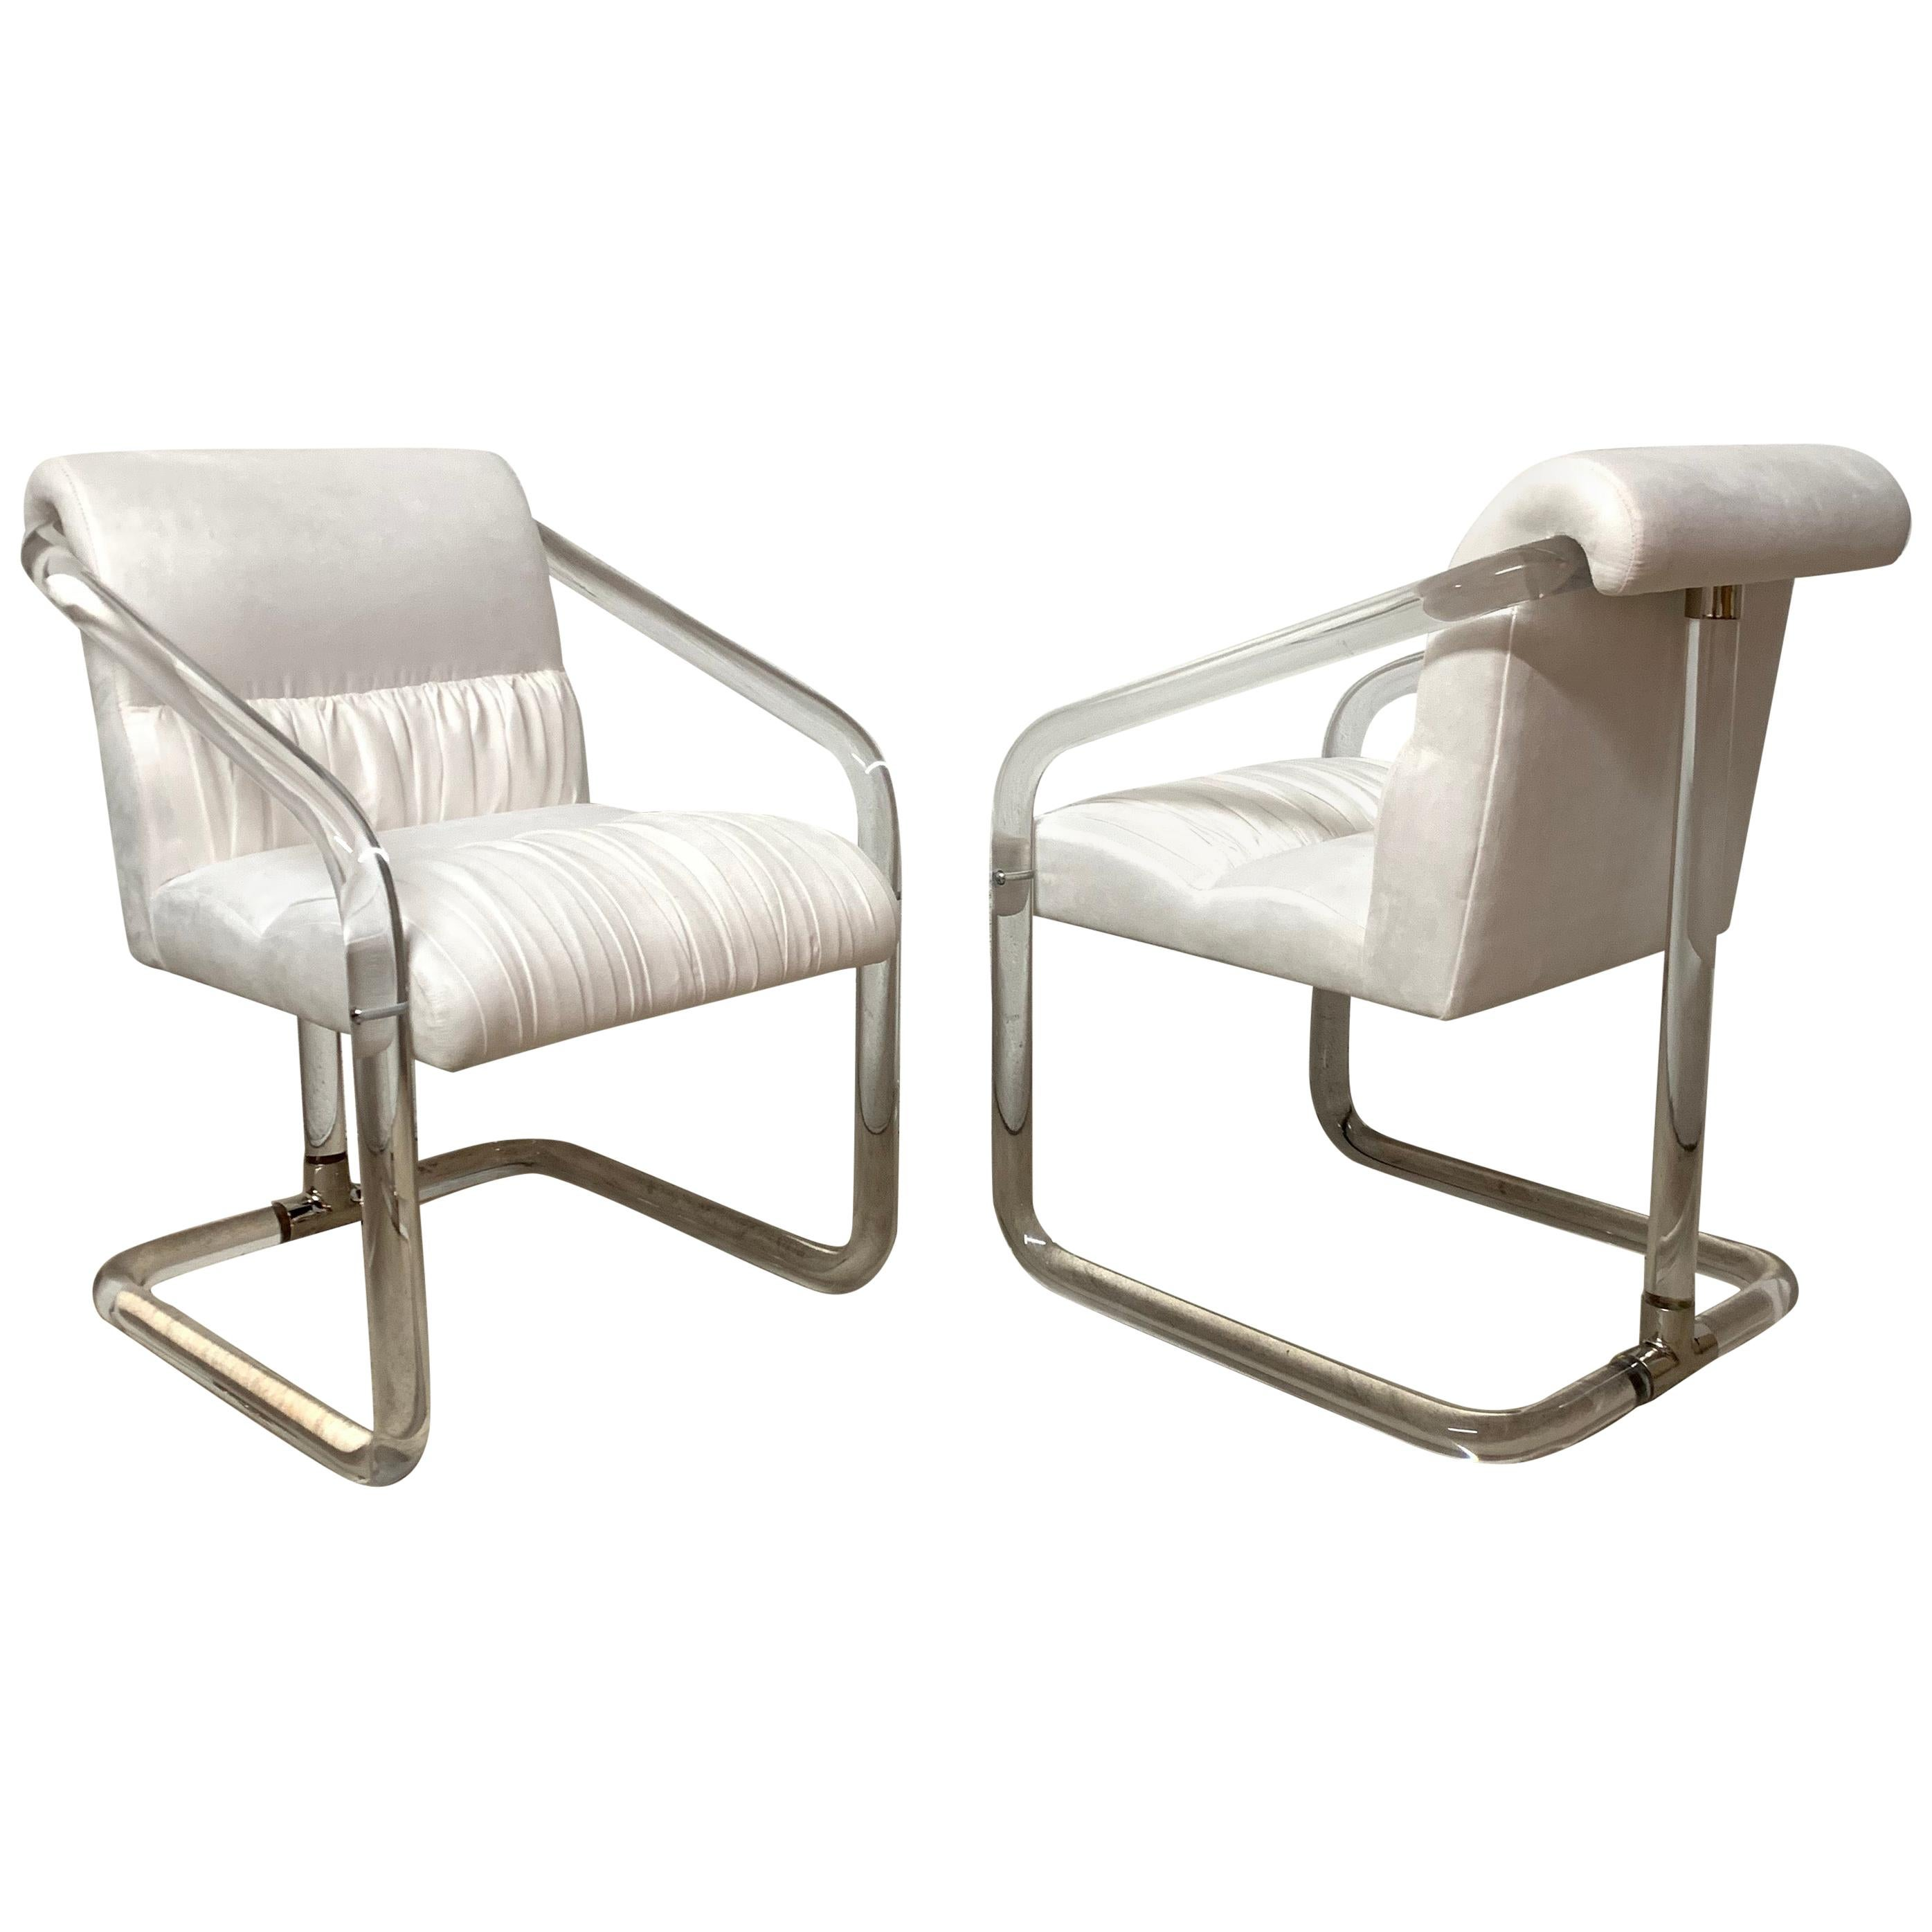 Pair of Lion in Frost Lucite Nickel and Ultra Suede Armchairs, Signed, USA 1970s